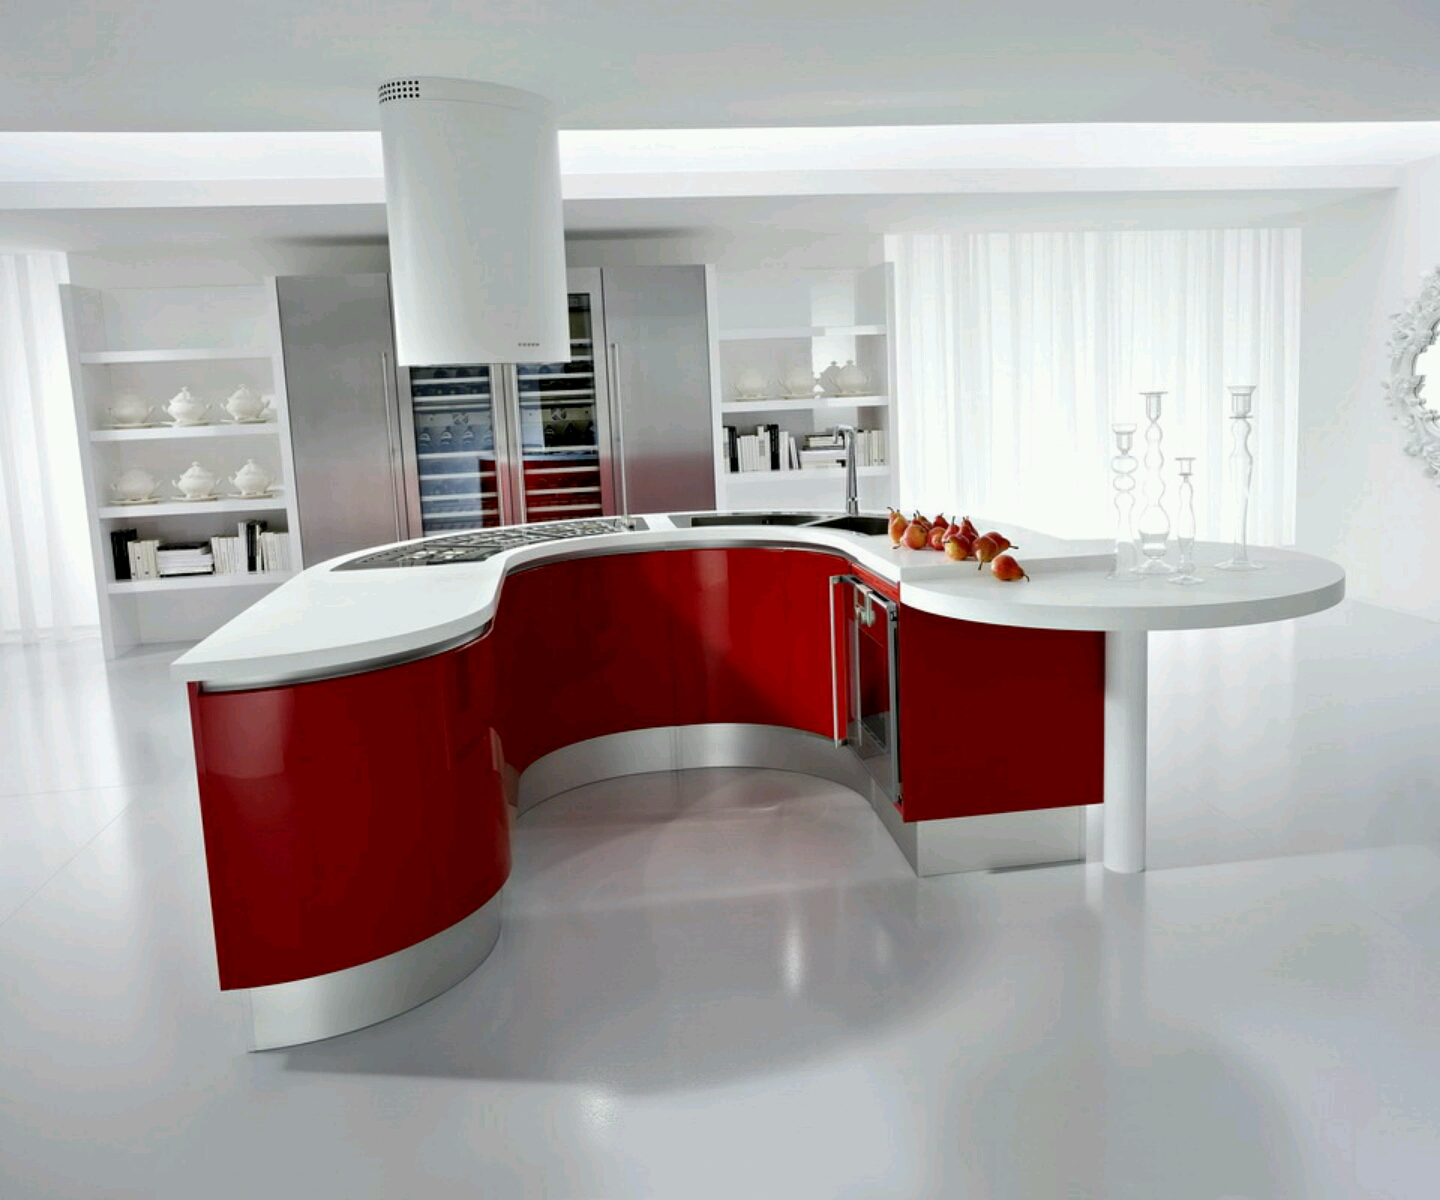 Modern kitchen cabinets designs ideas furniture gallery for Modern kitchen units